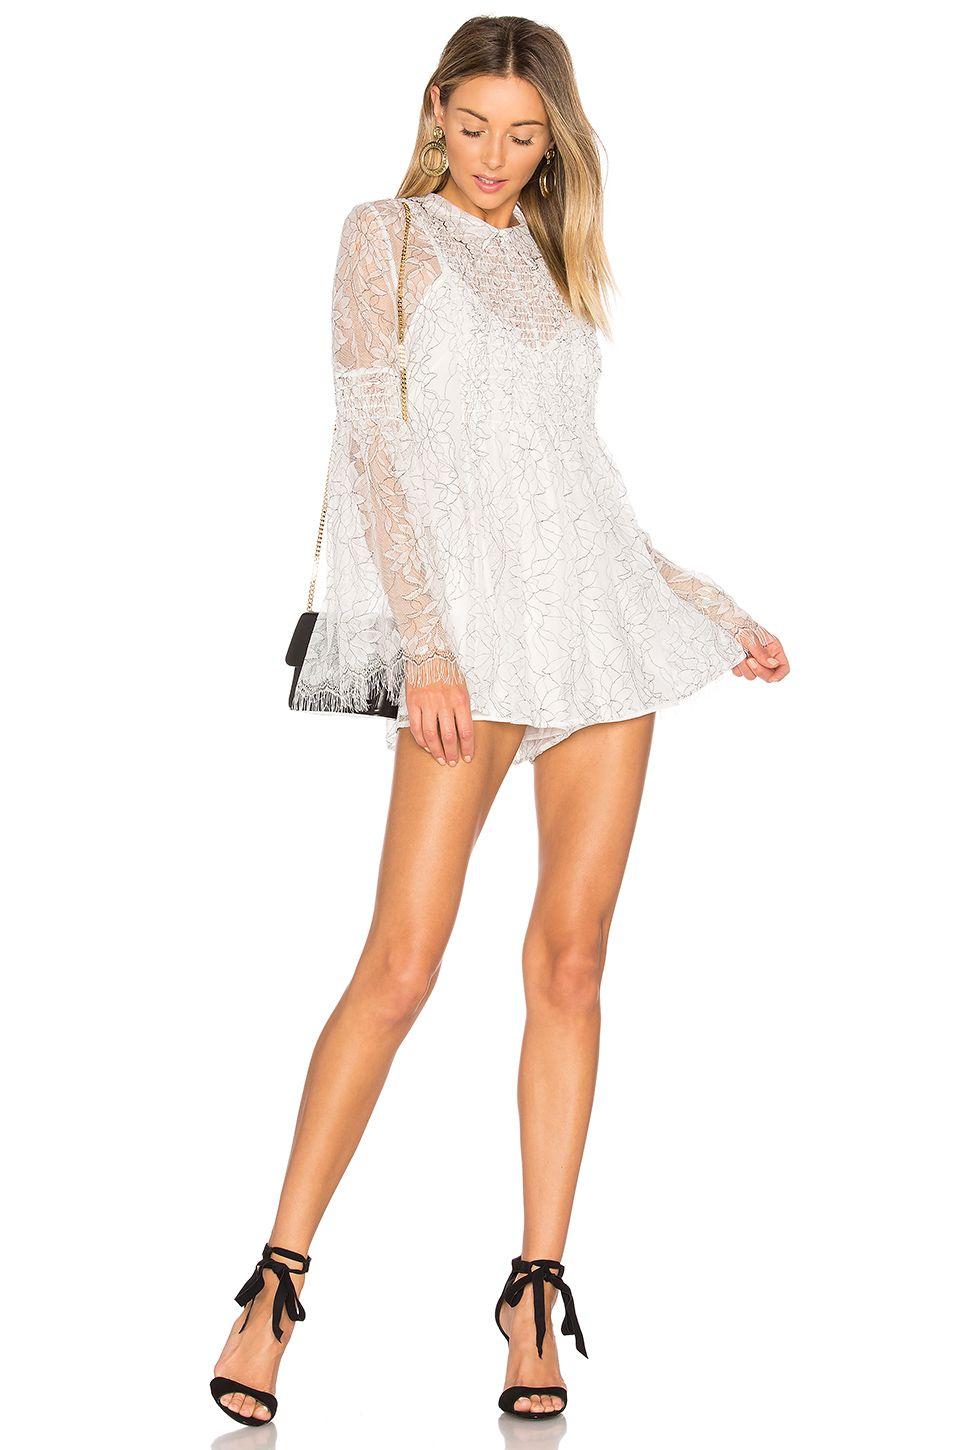 bcfa38cfb78 Alice McCall Hands To Myself Playsuit in White. Revolve. White ...